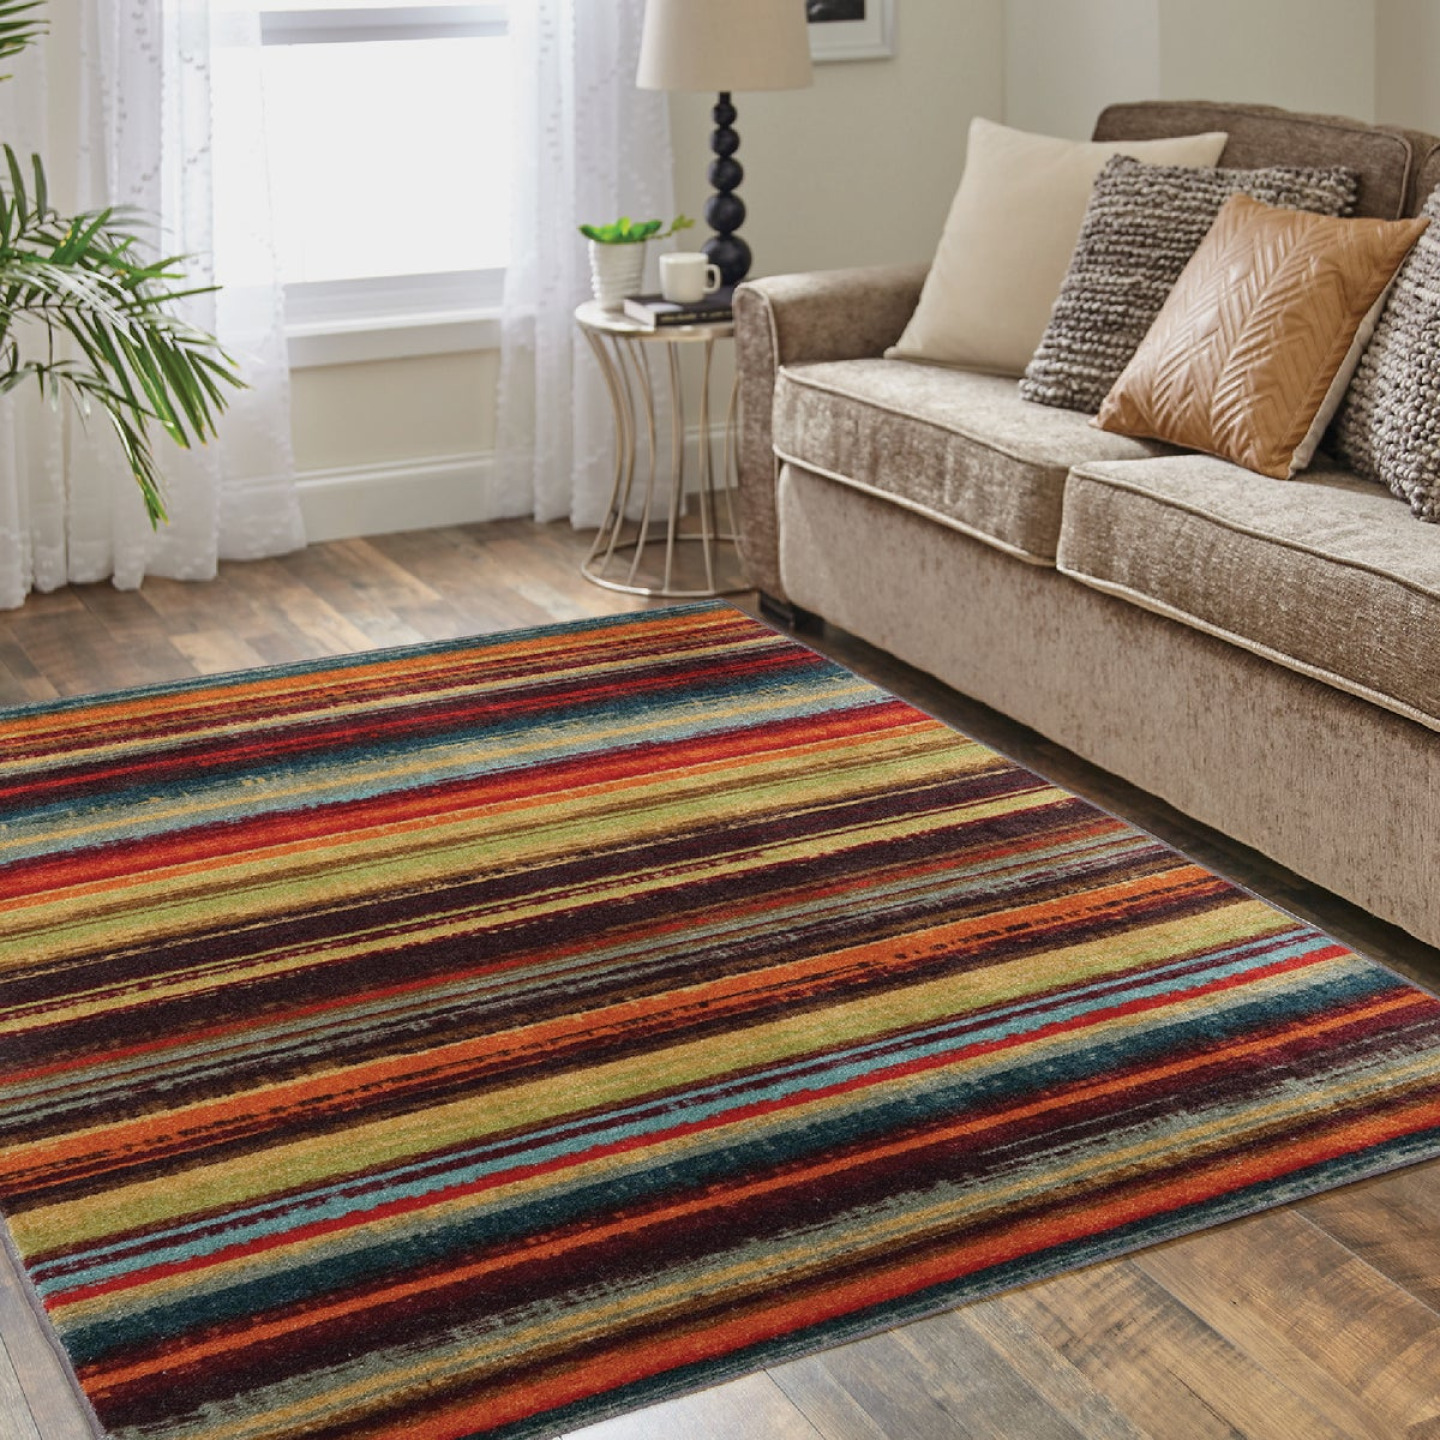 Mohawk Home Boho Stripe Multi-Color 5 Ft. x 8 Ft. Area Rug Image 2